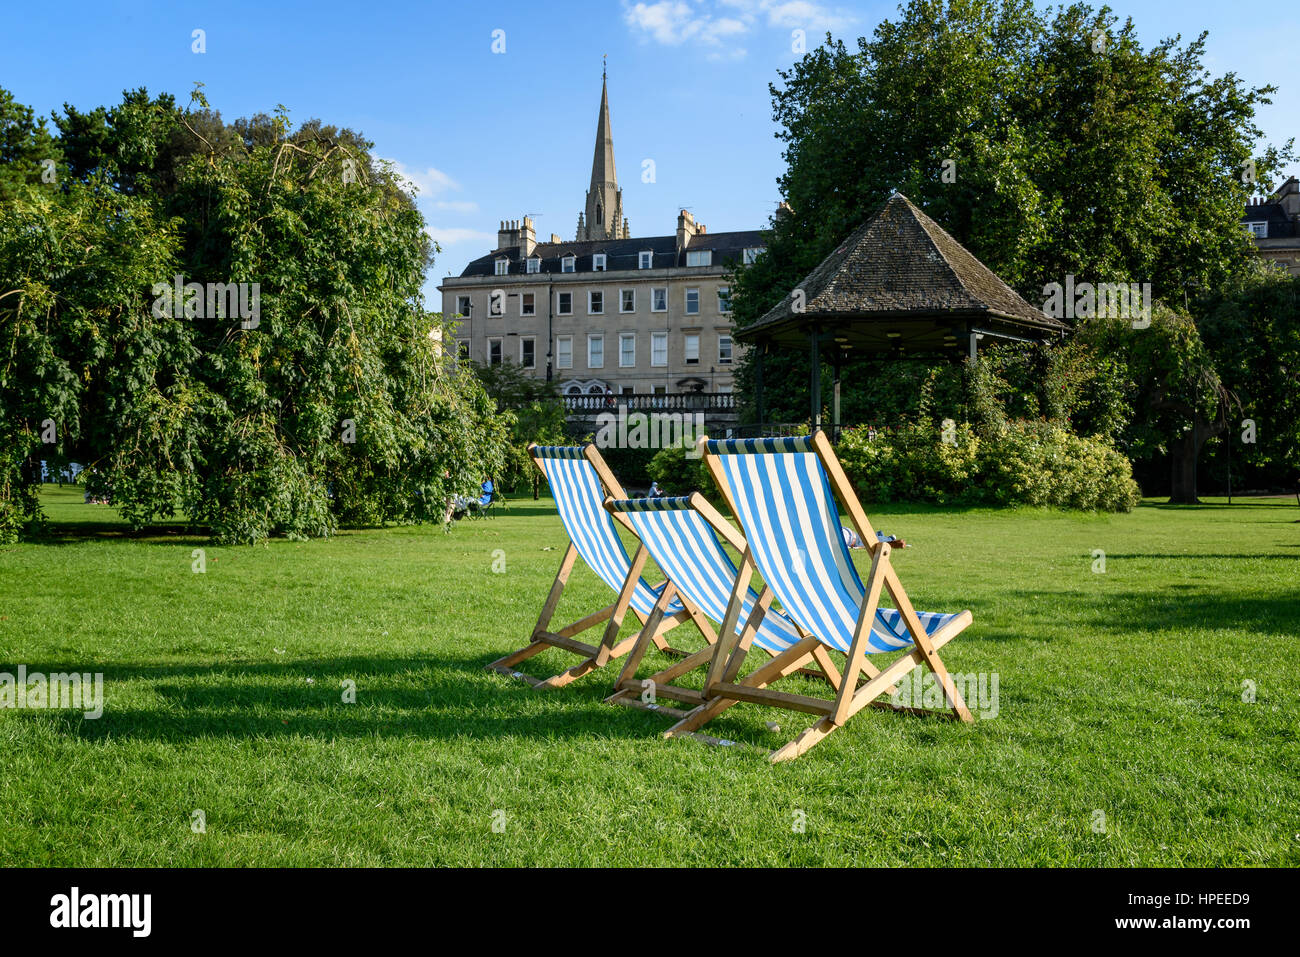 Bandstand and loungers  in the Parade Gardens and Bath Abbey. Bath, Somerset, England - Stock Image